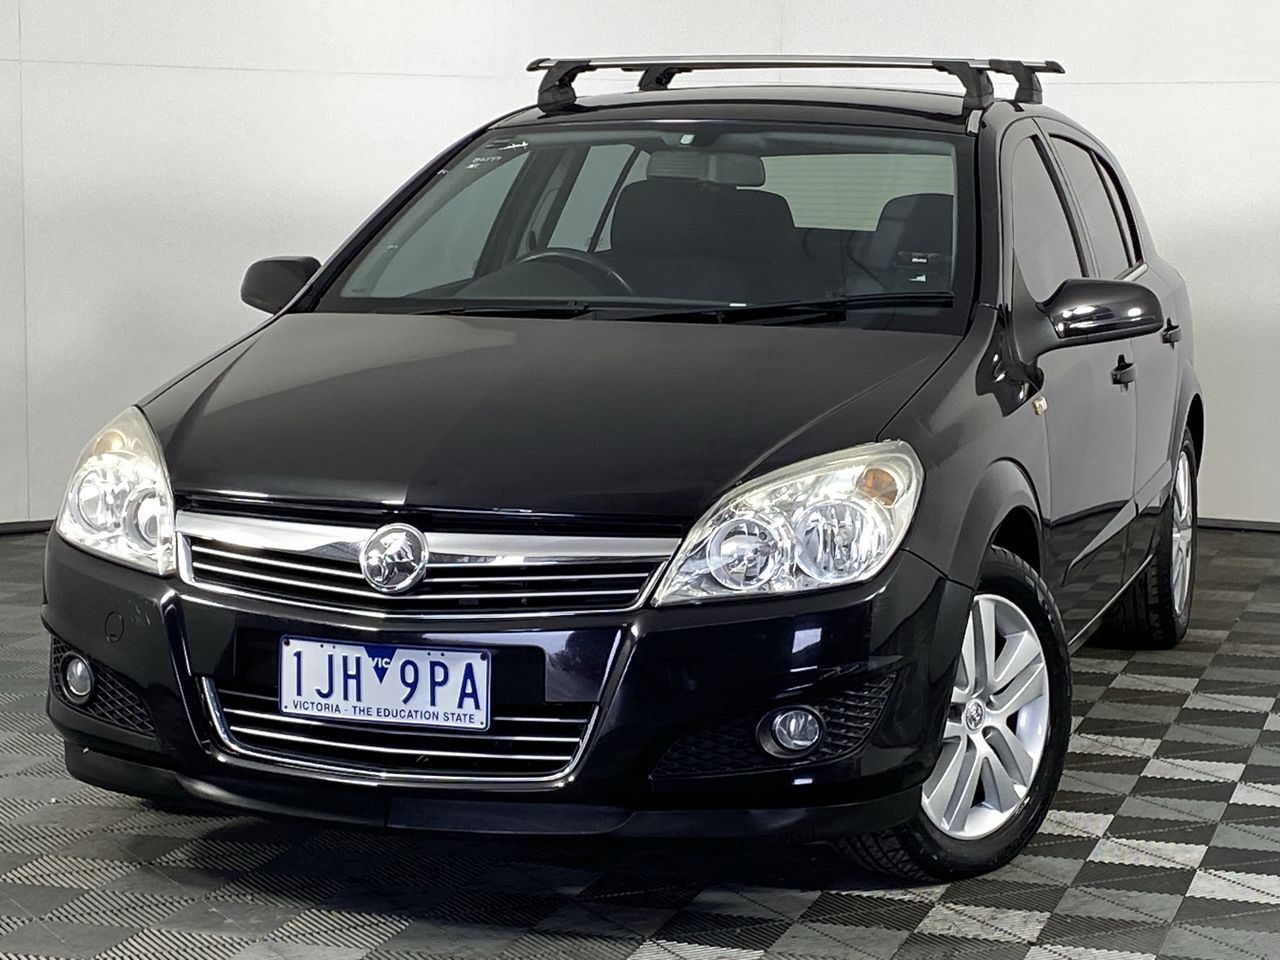 2008 Holden Astra CDTi AH Turbo Diesel Automatic Hatchback